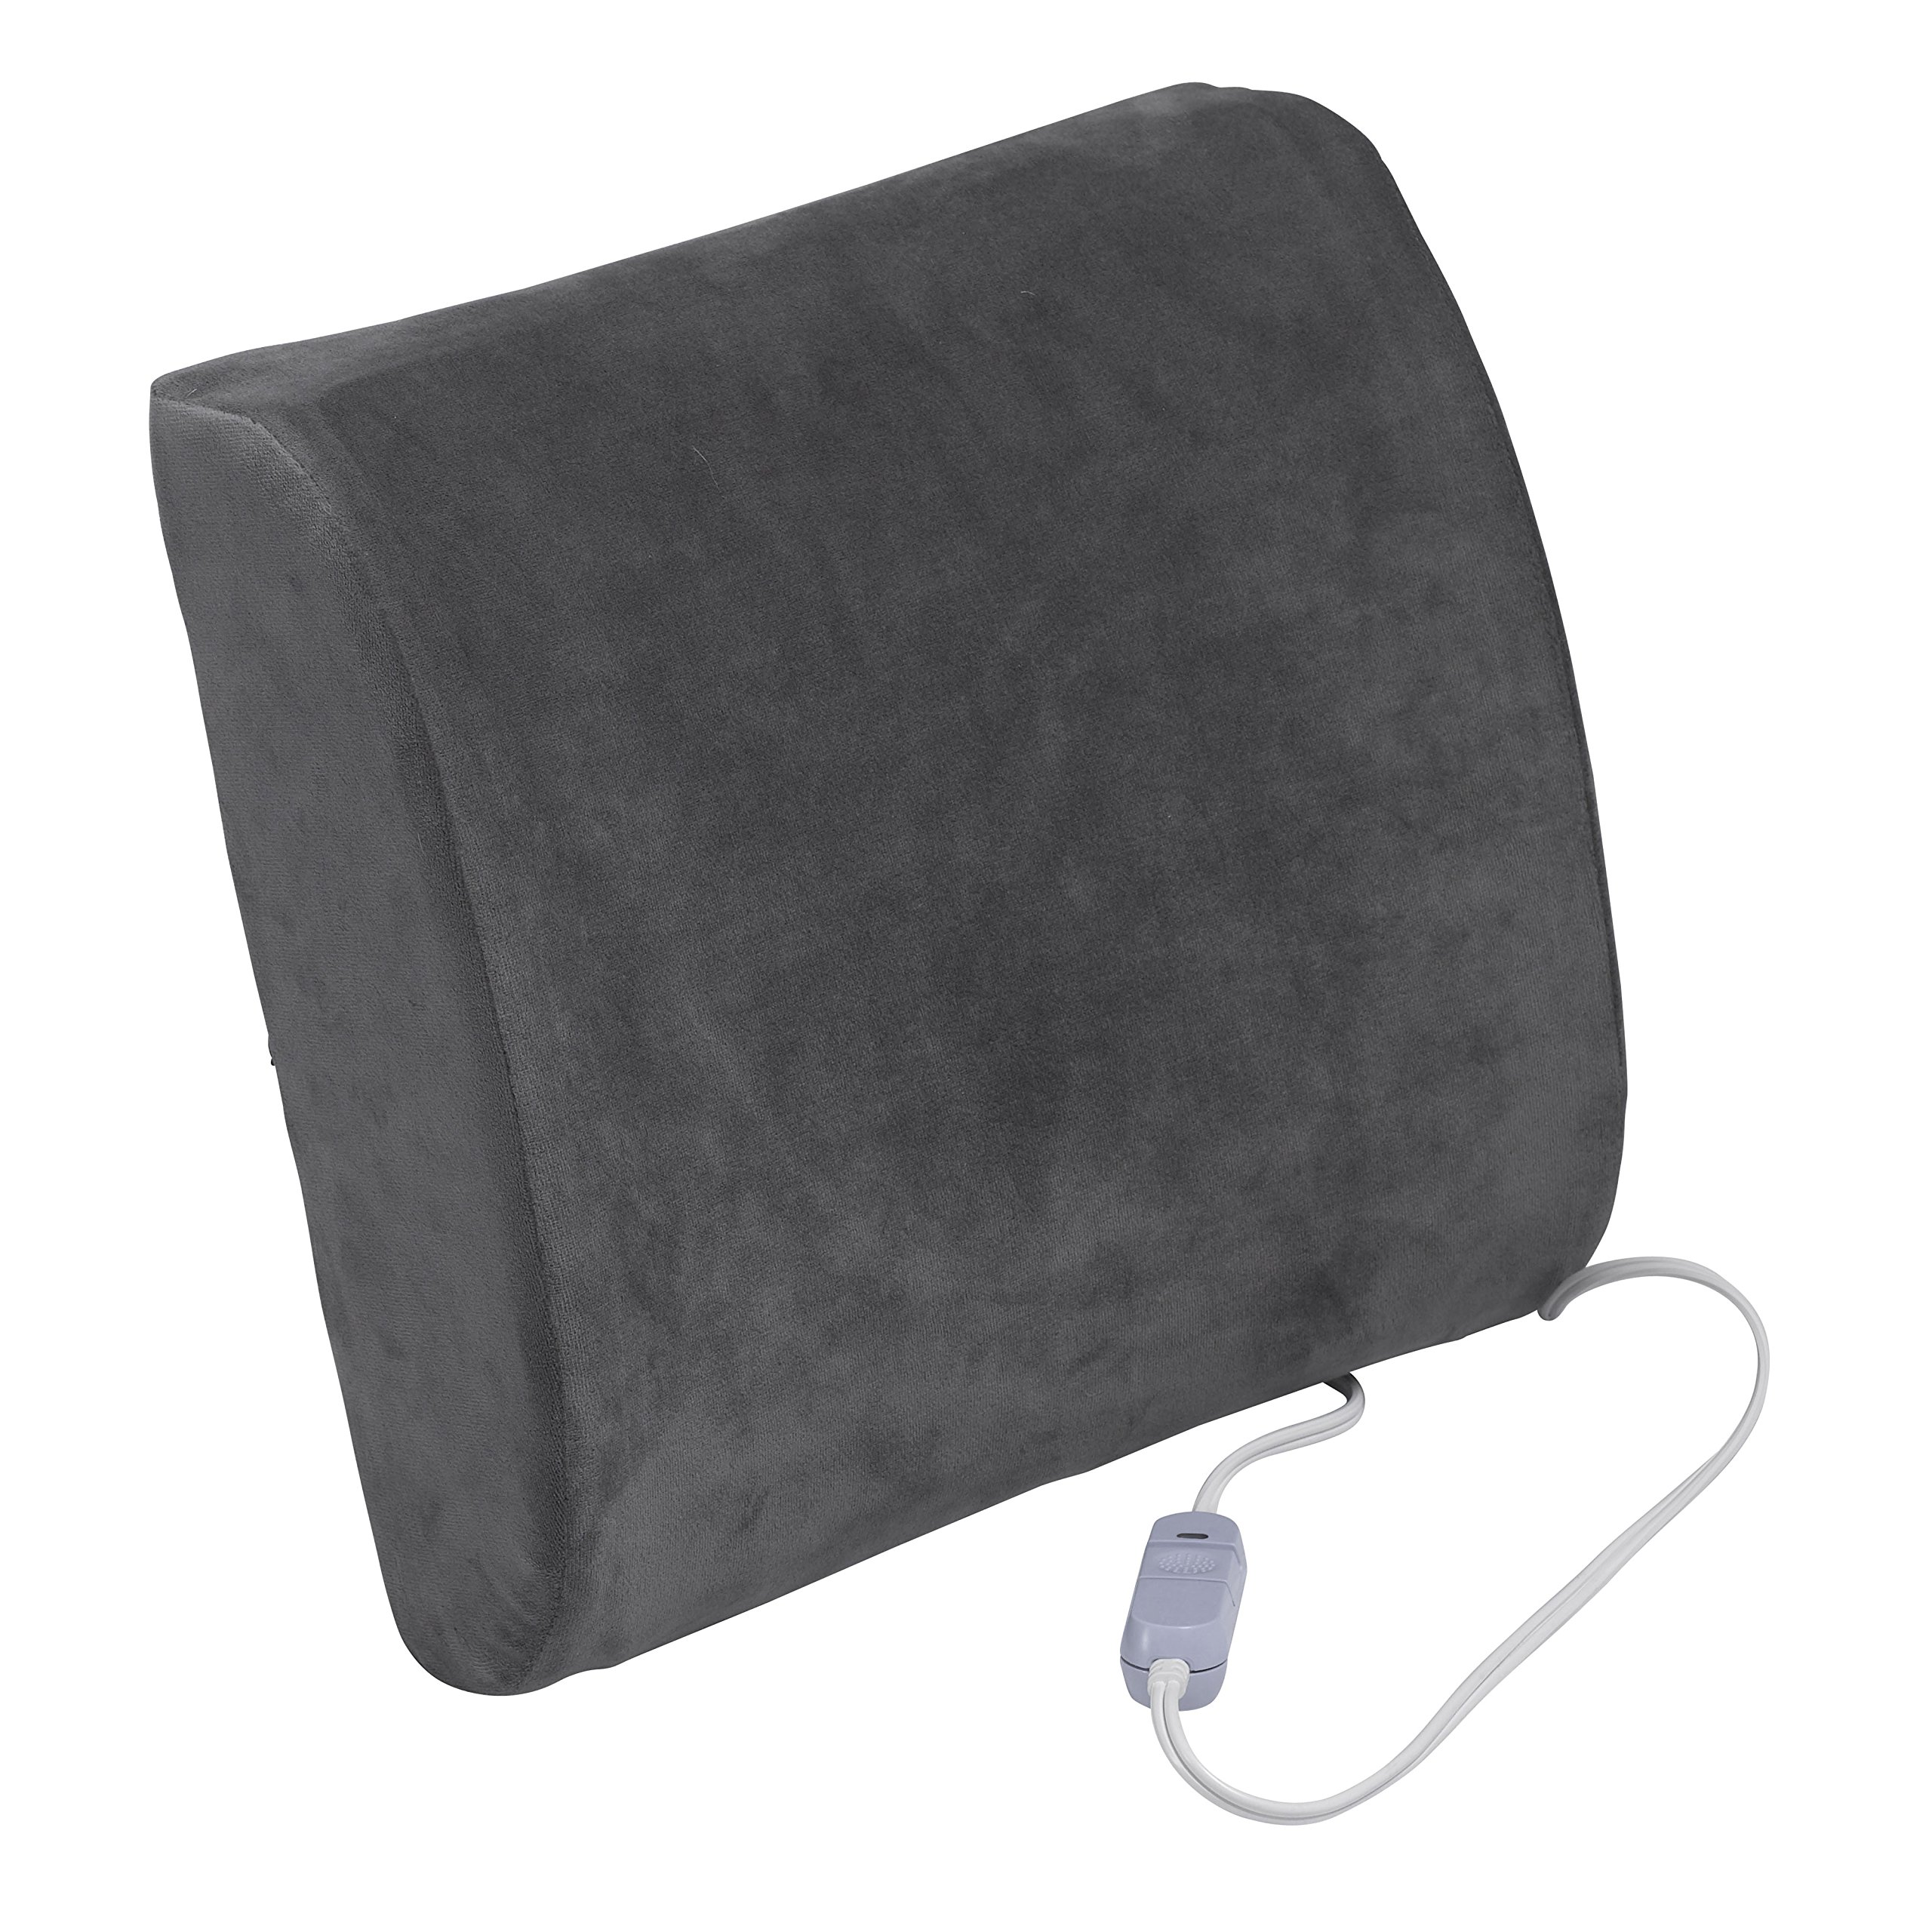 Drive Medical Comfort Touch Heated Lumbar Support Cushion, Gray